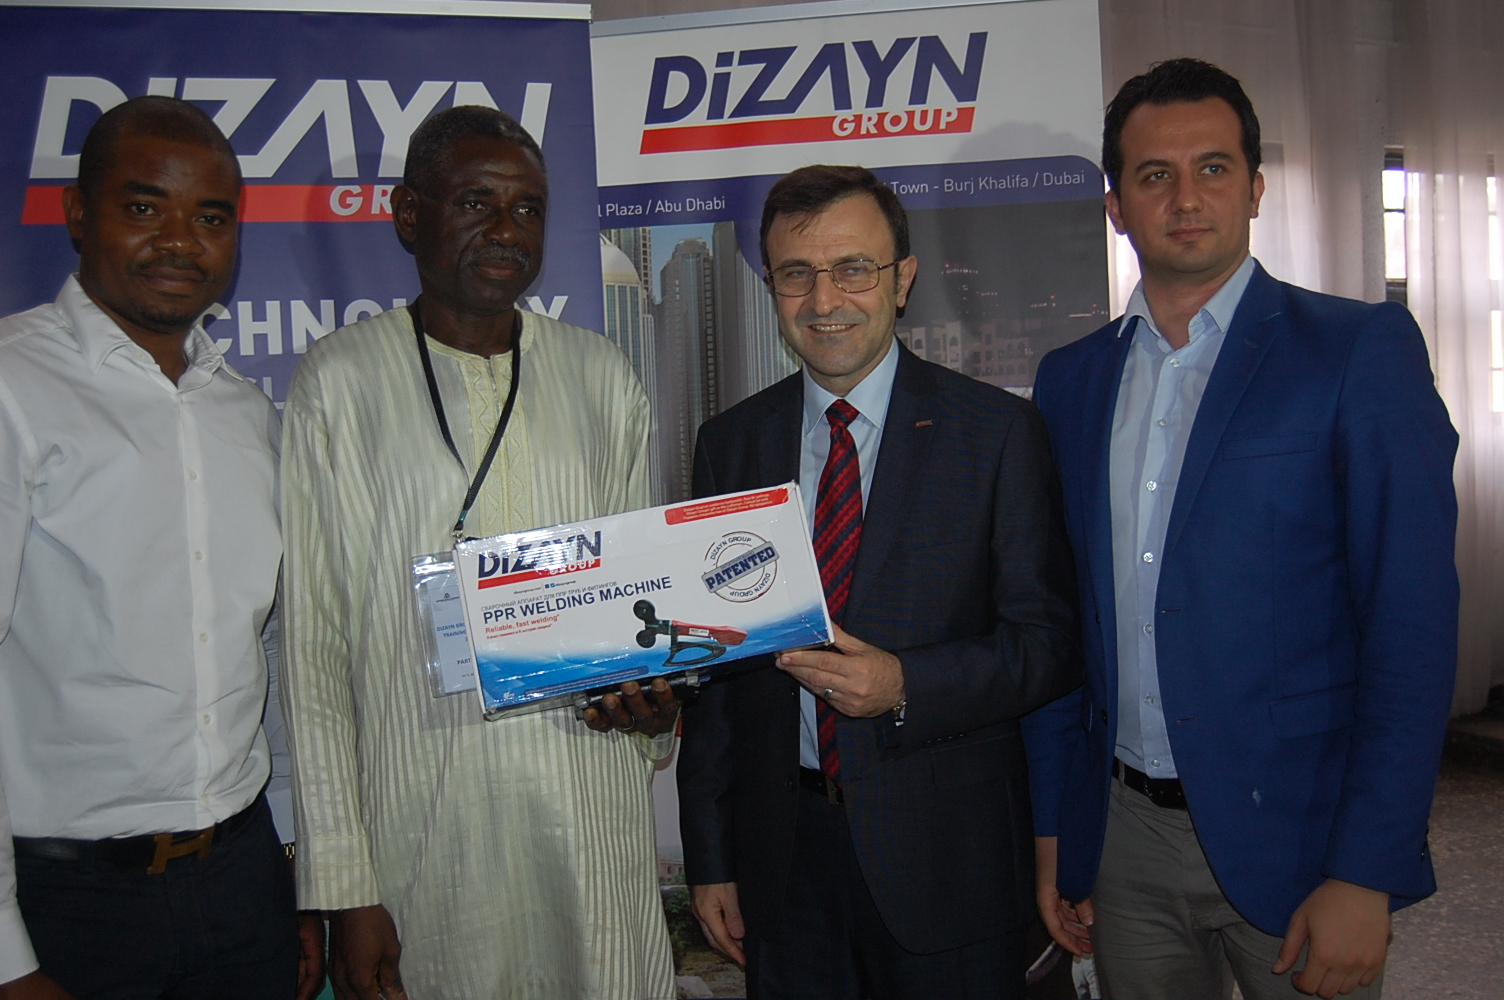 PAEDIA EXPRESS MULTIMEDIA : TECHNICAL TRAINING SESSIONS OF DIZAYN HELD RECENTLY IN LAGOS,NIGERIA